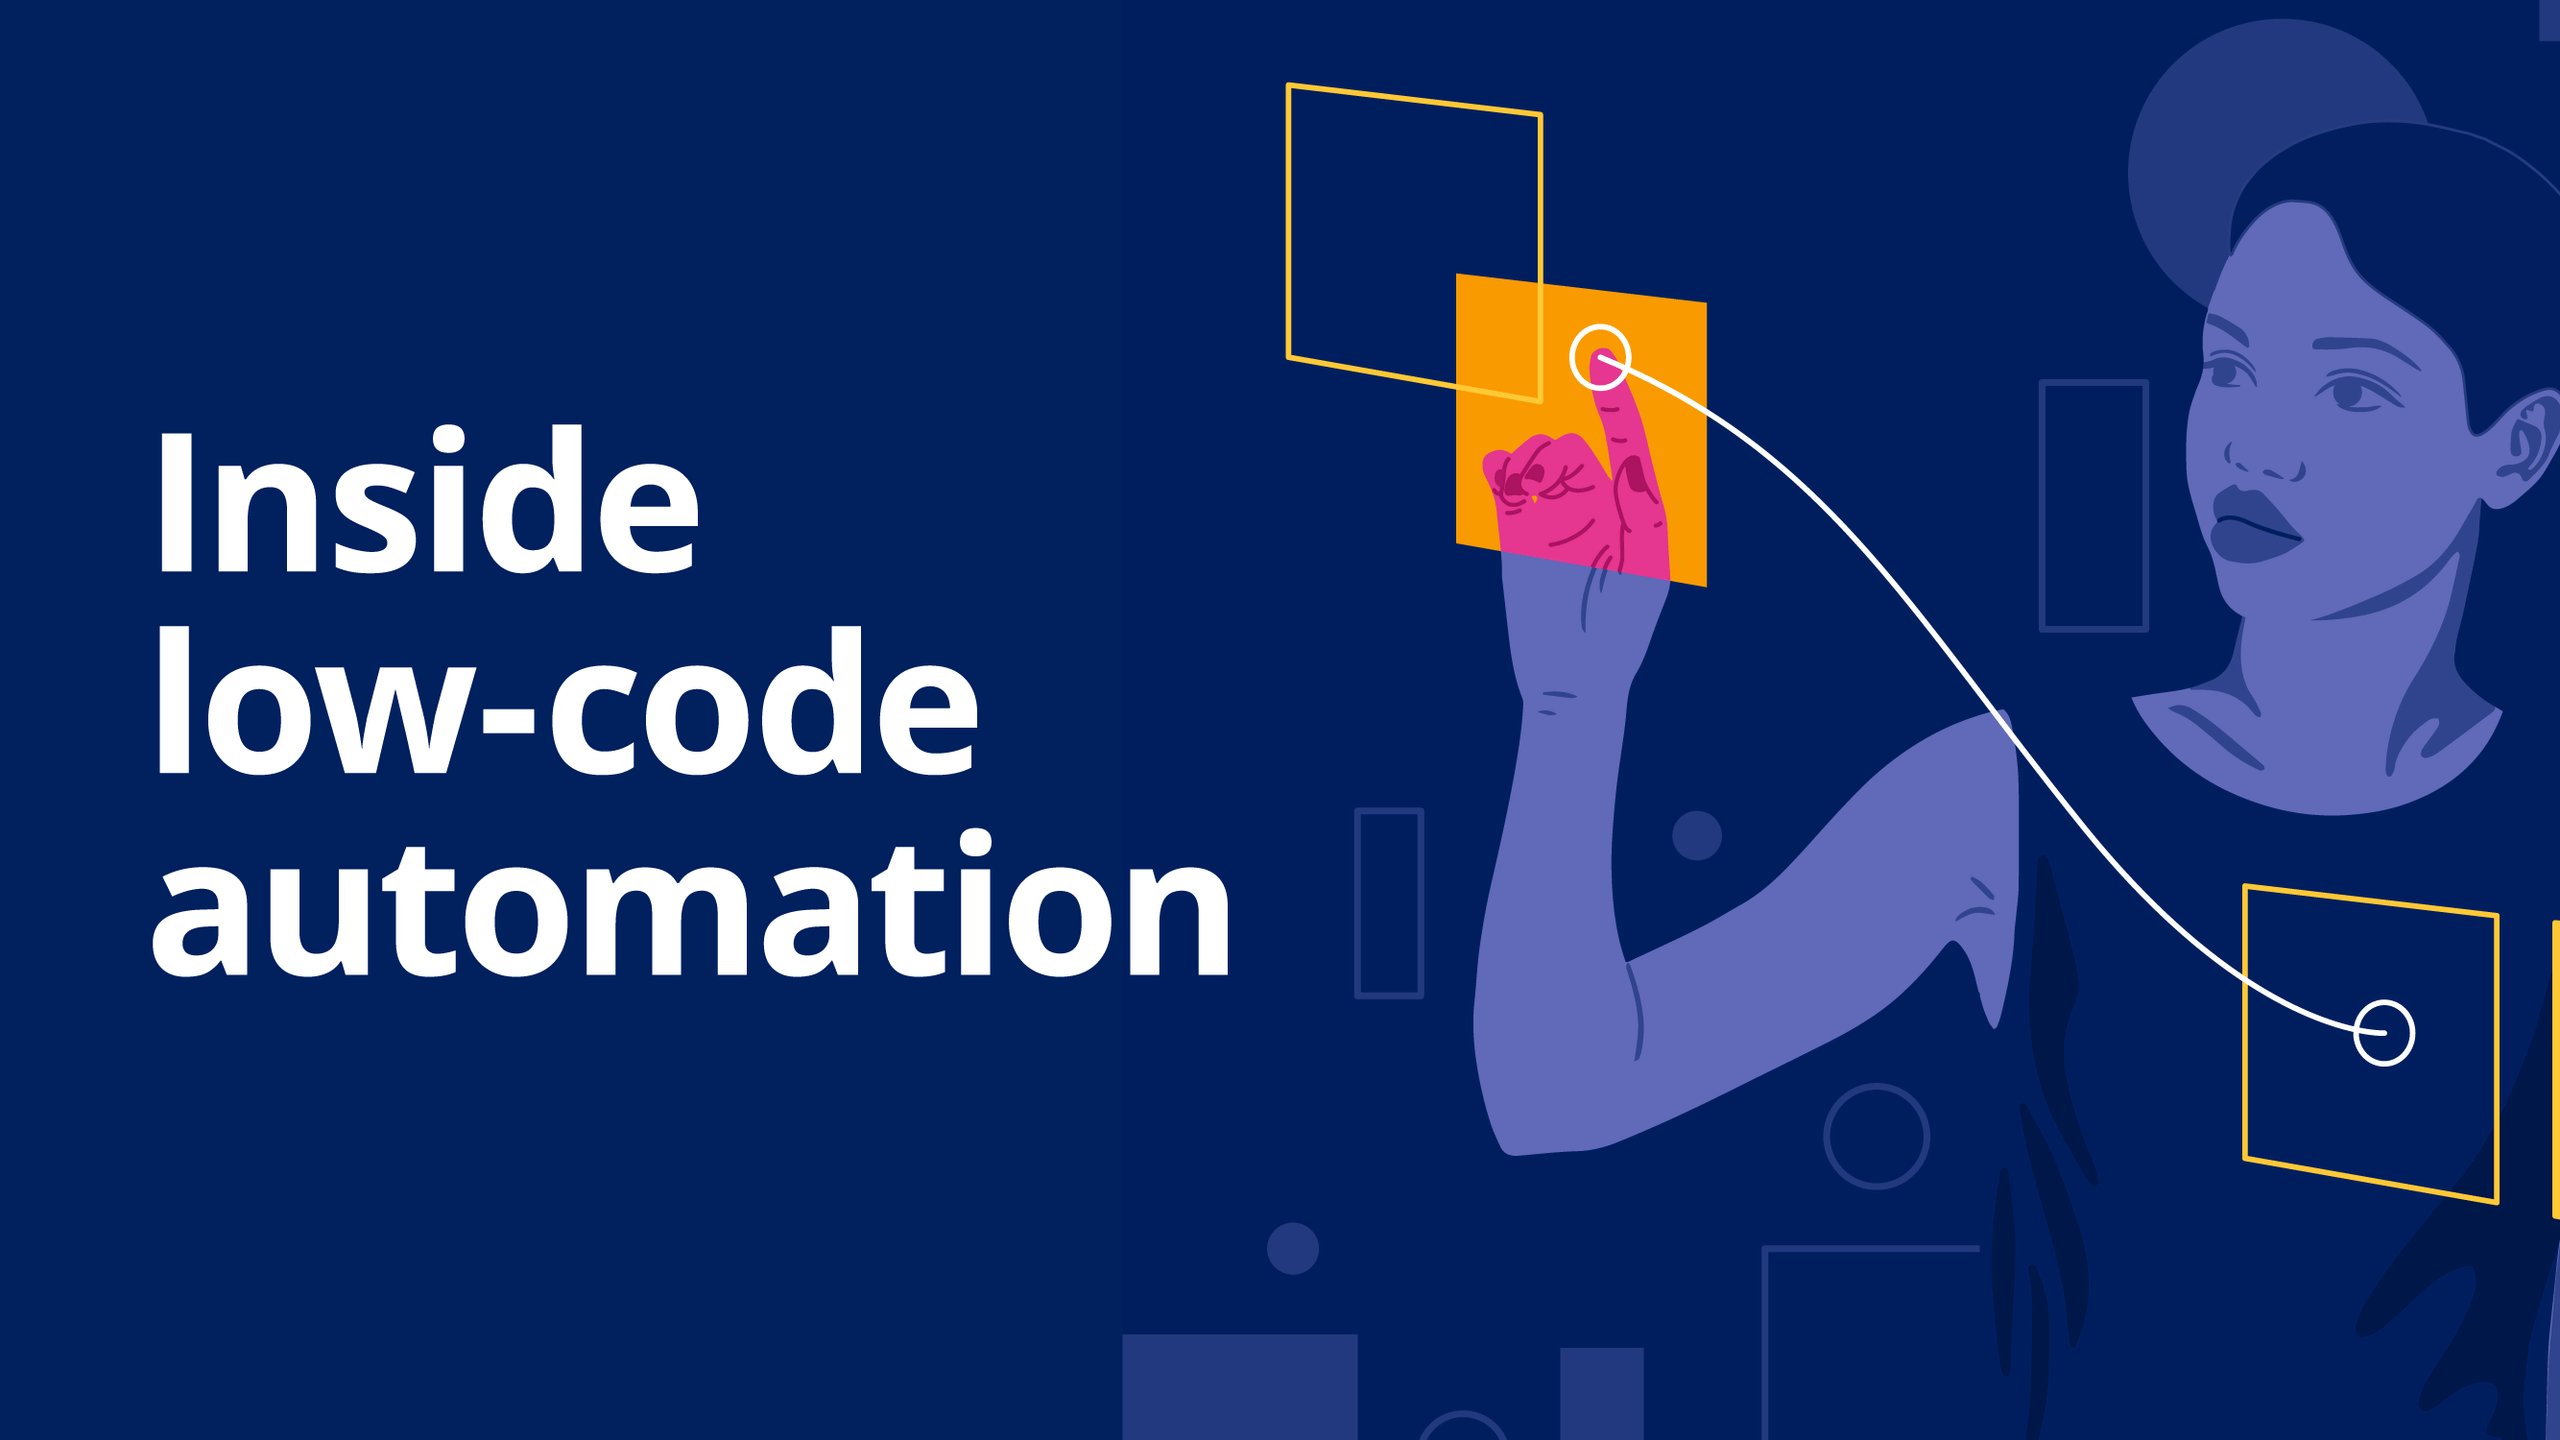 Inside low-code automation